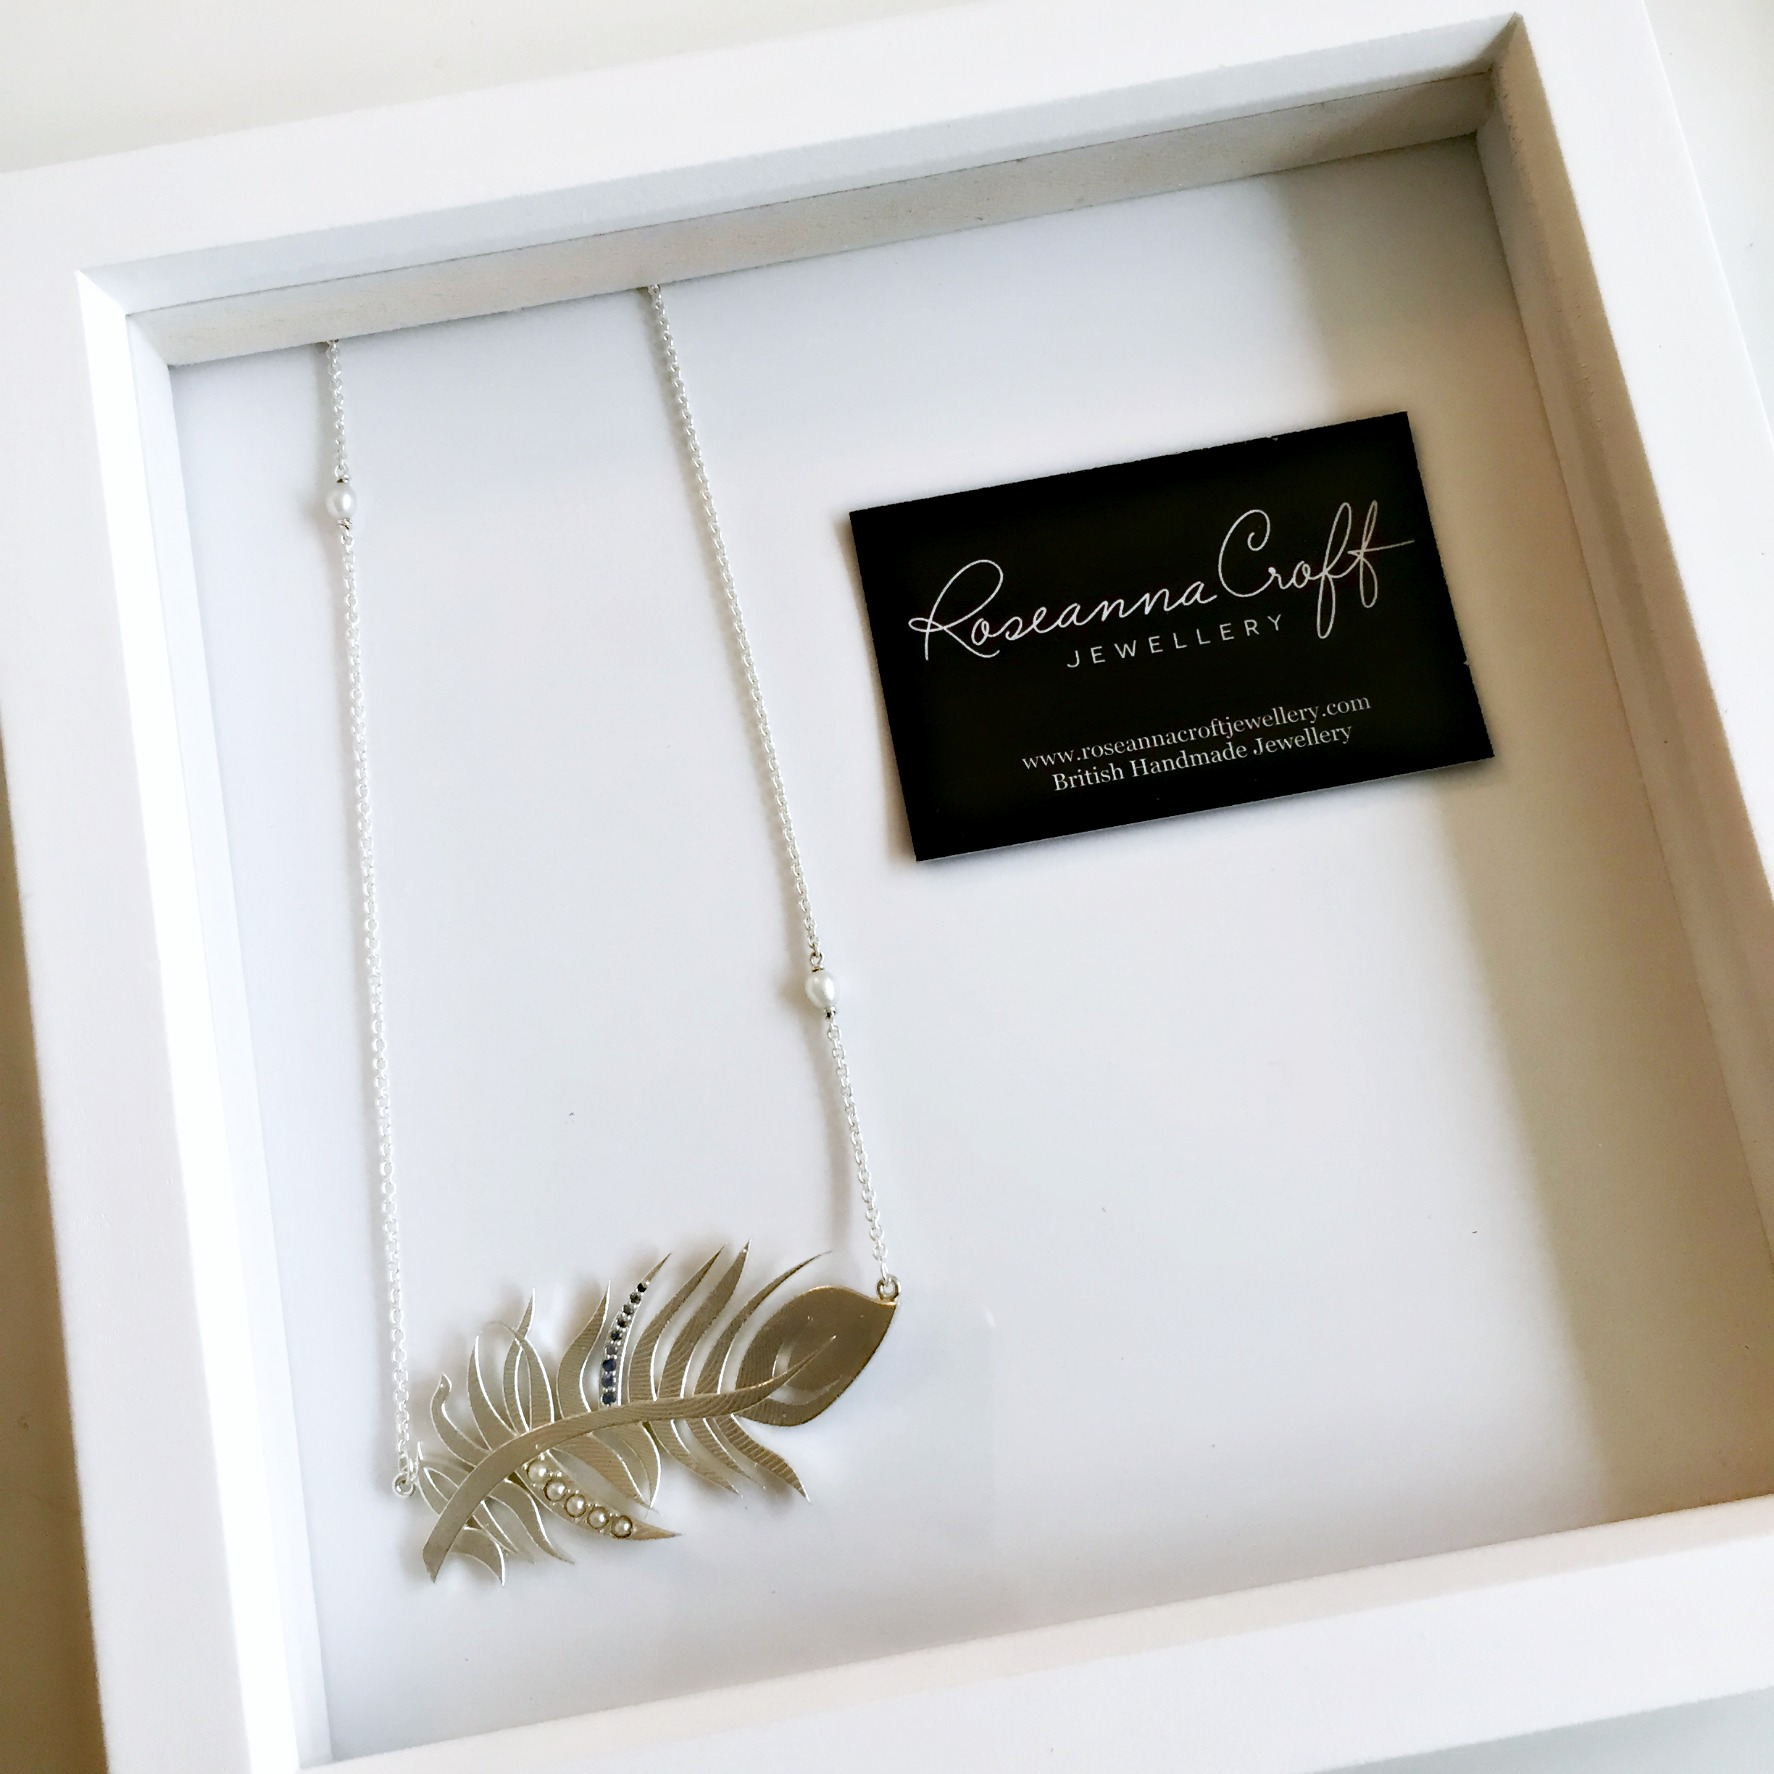 'The Feather' New Collection by Roseanna Croft Jewellery